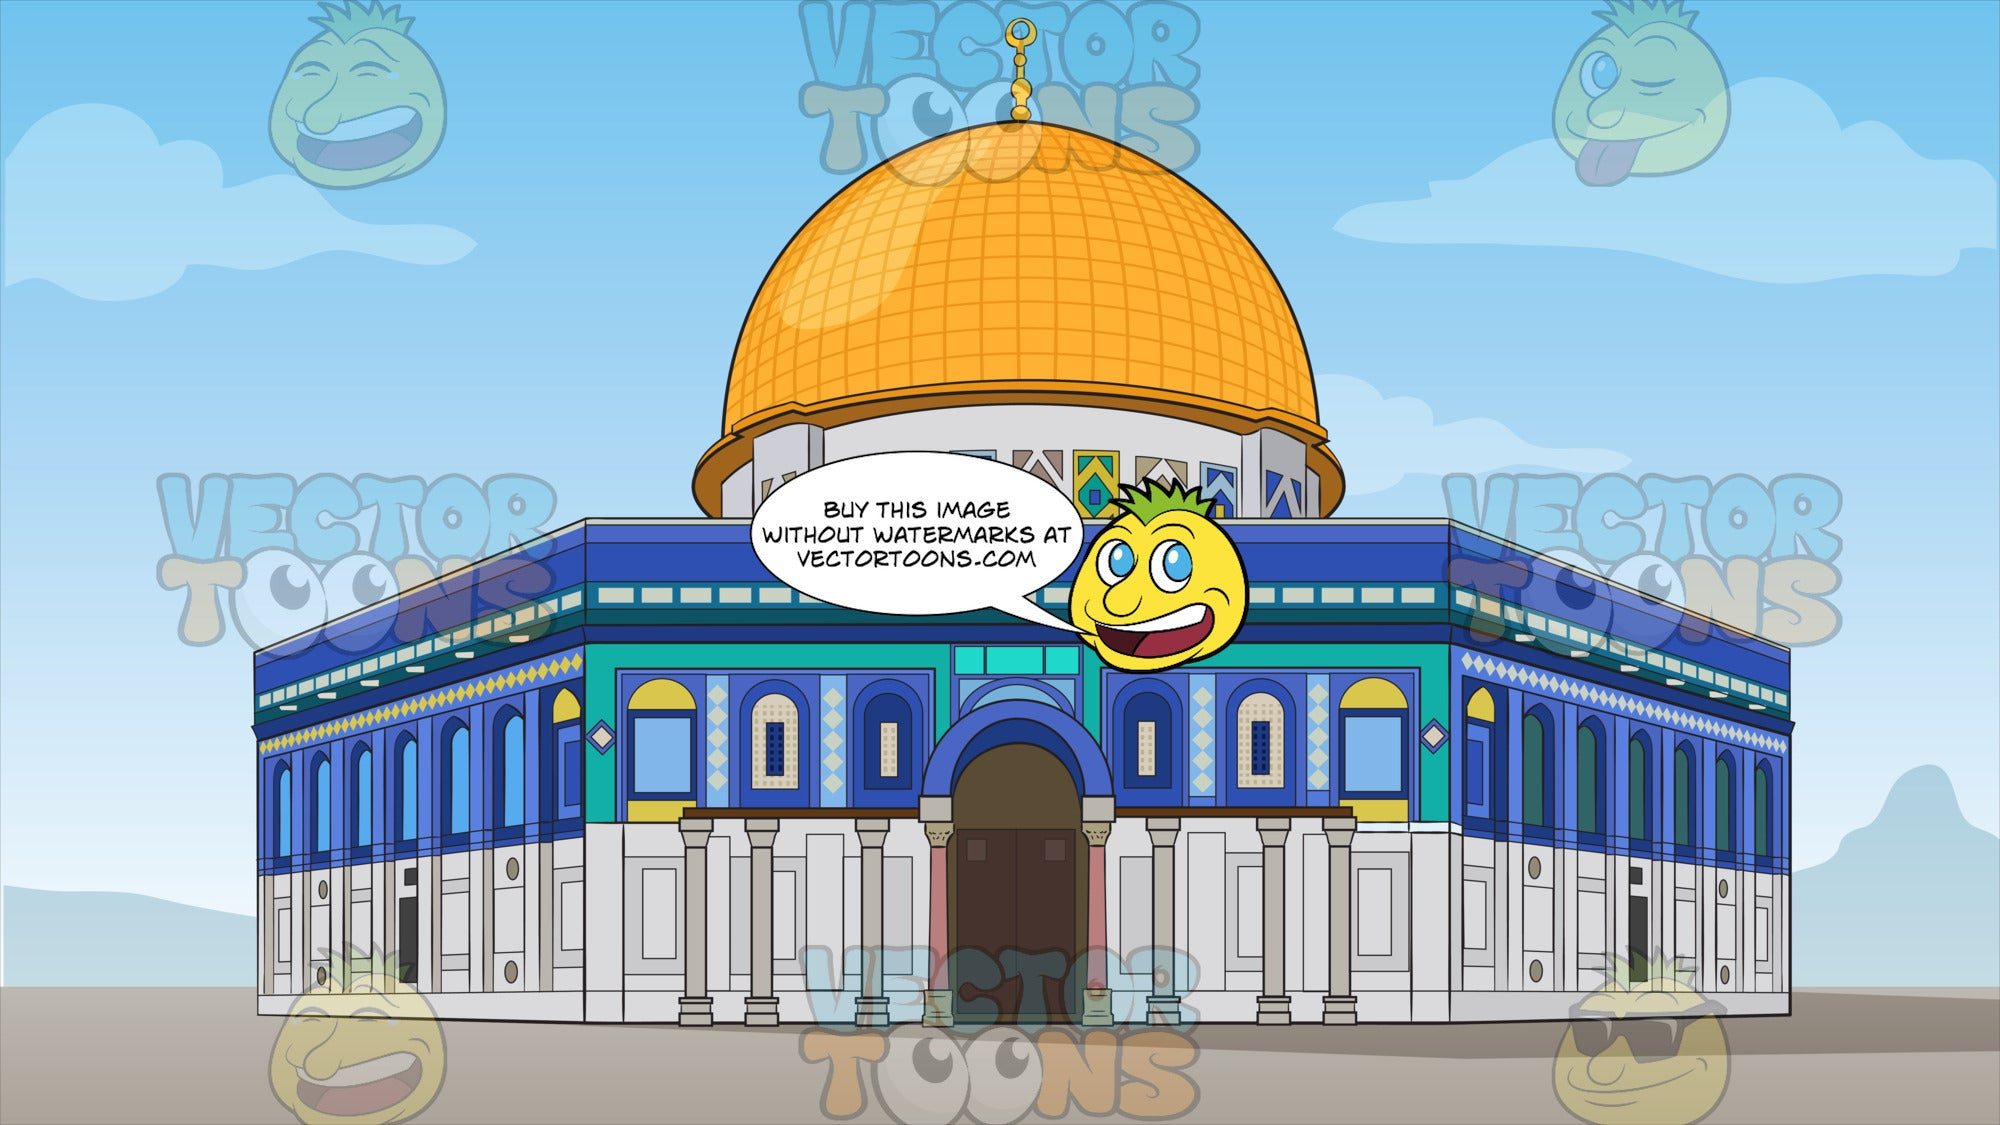 Dome of the Rock Background. A front view of the Dome of The Rock, an octagonal shaped Islamic shrine with mosaics and gold plated roof, located on the Temple Mount in the Old City of Jerusalem